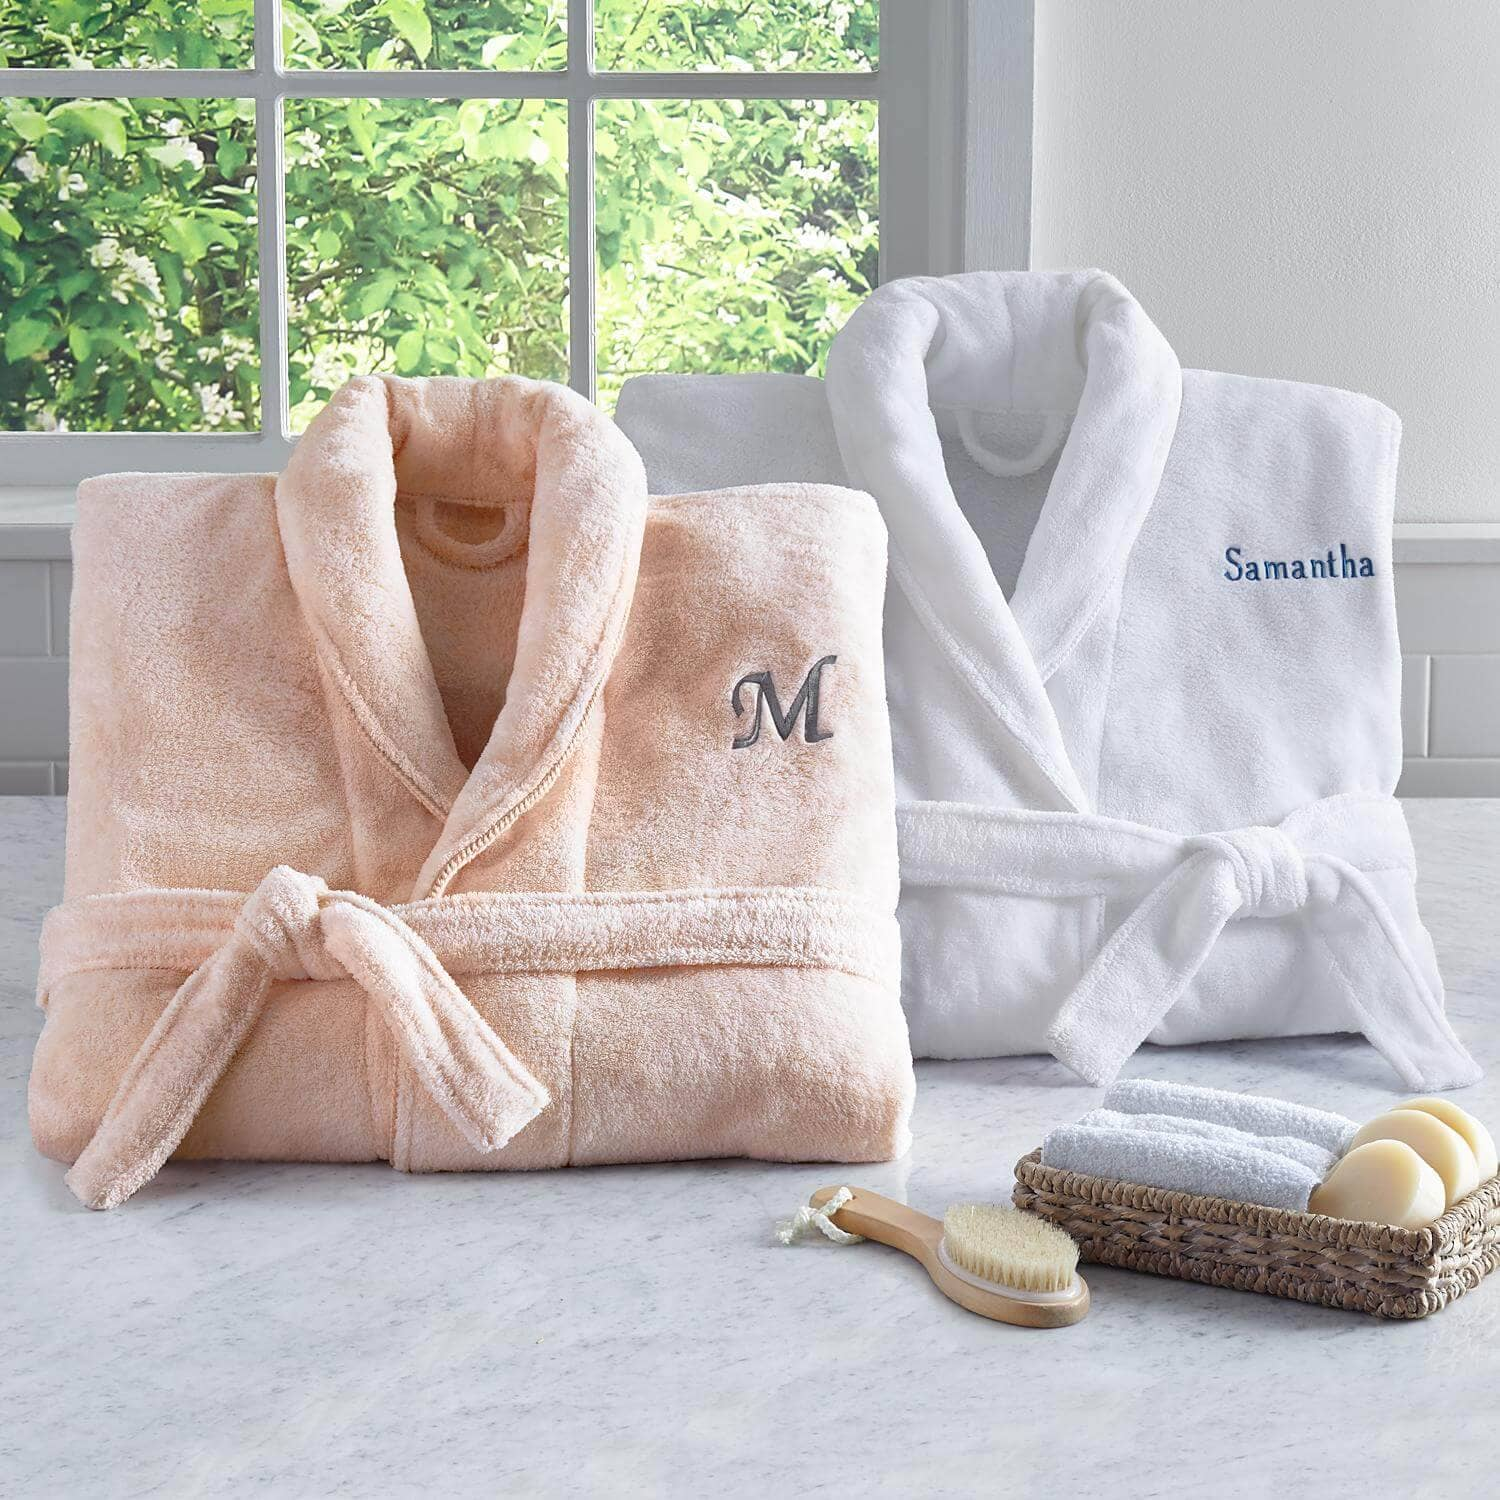 Women's Personalized Robe